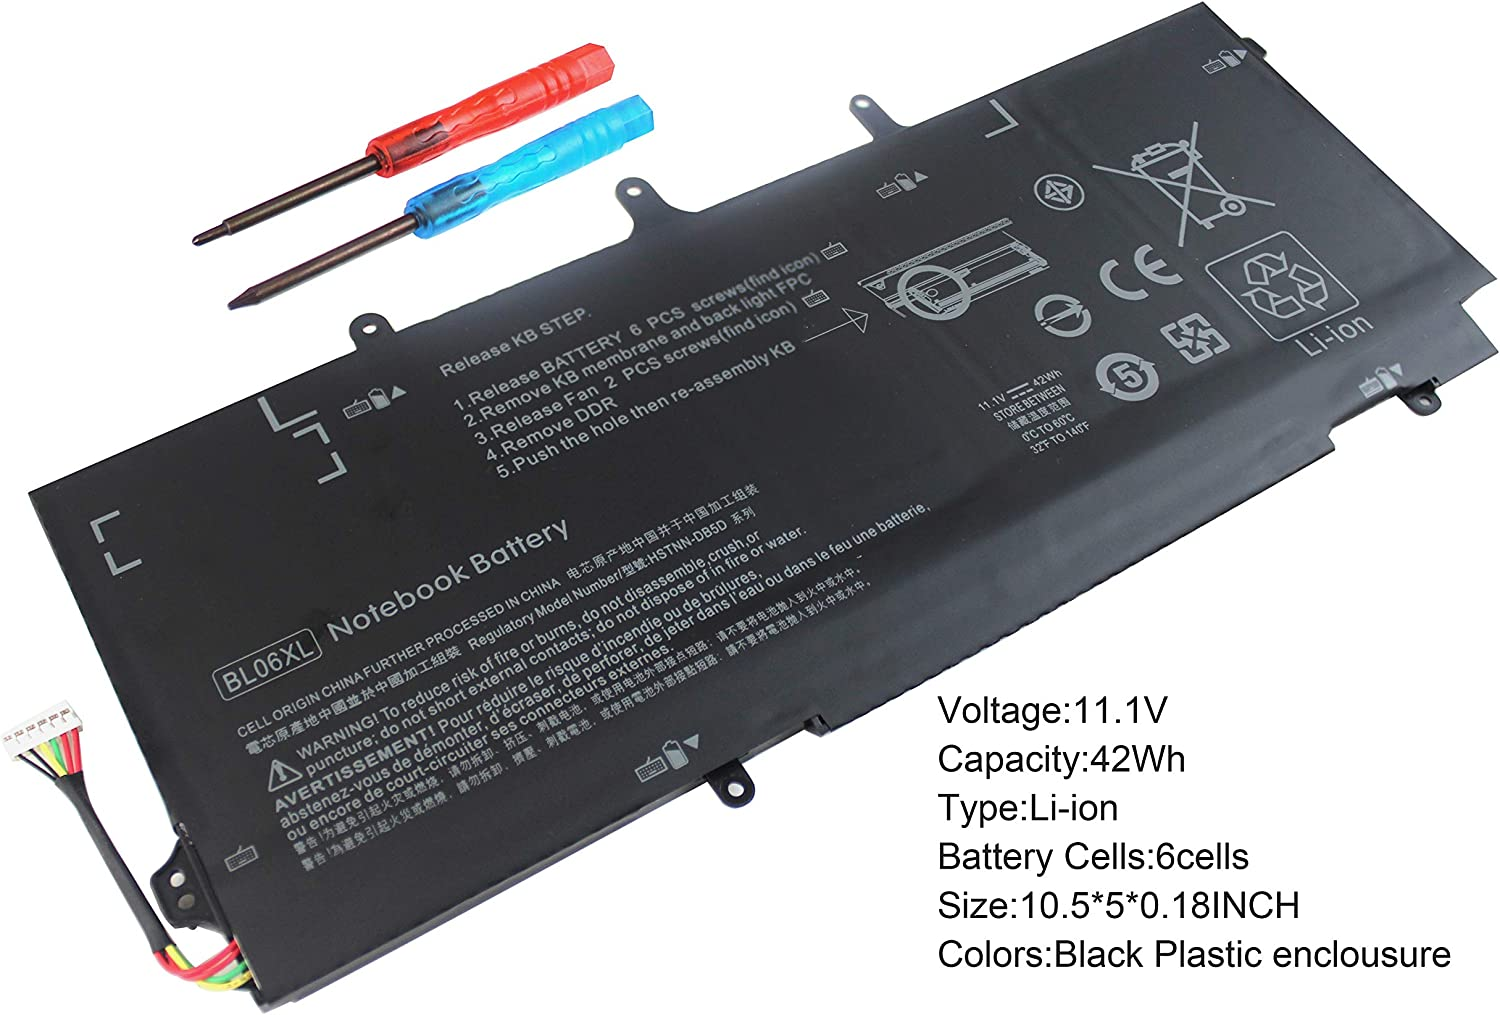 Gomarty BL06XL Laptop Battery Compatible for HP EliteBook Folio 1040 G0 G1 G2 BL06042XL HSTNN-DB5D HSTNN-IB5D HSTNN-W02C 722236-171 722236-271 722236-2C1 722297-001 005 F450 F450C